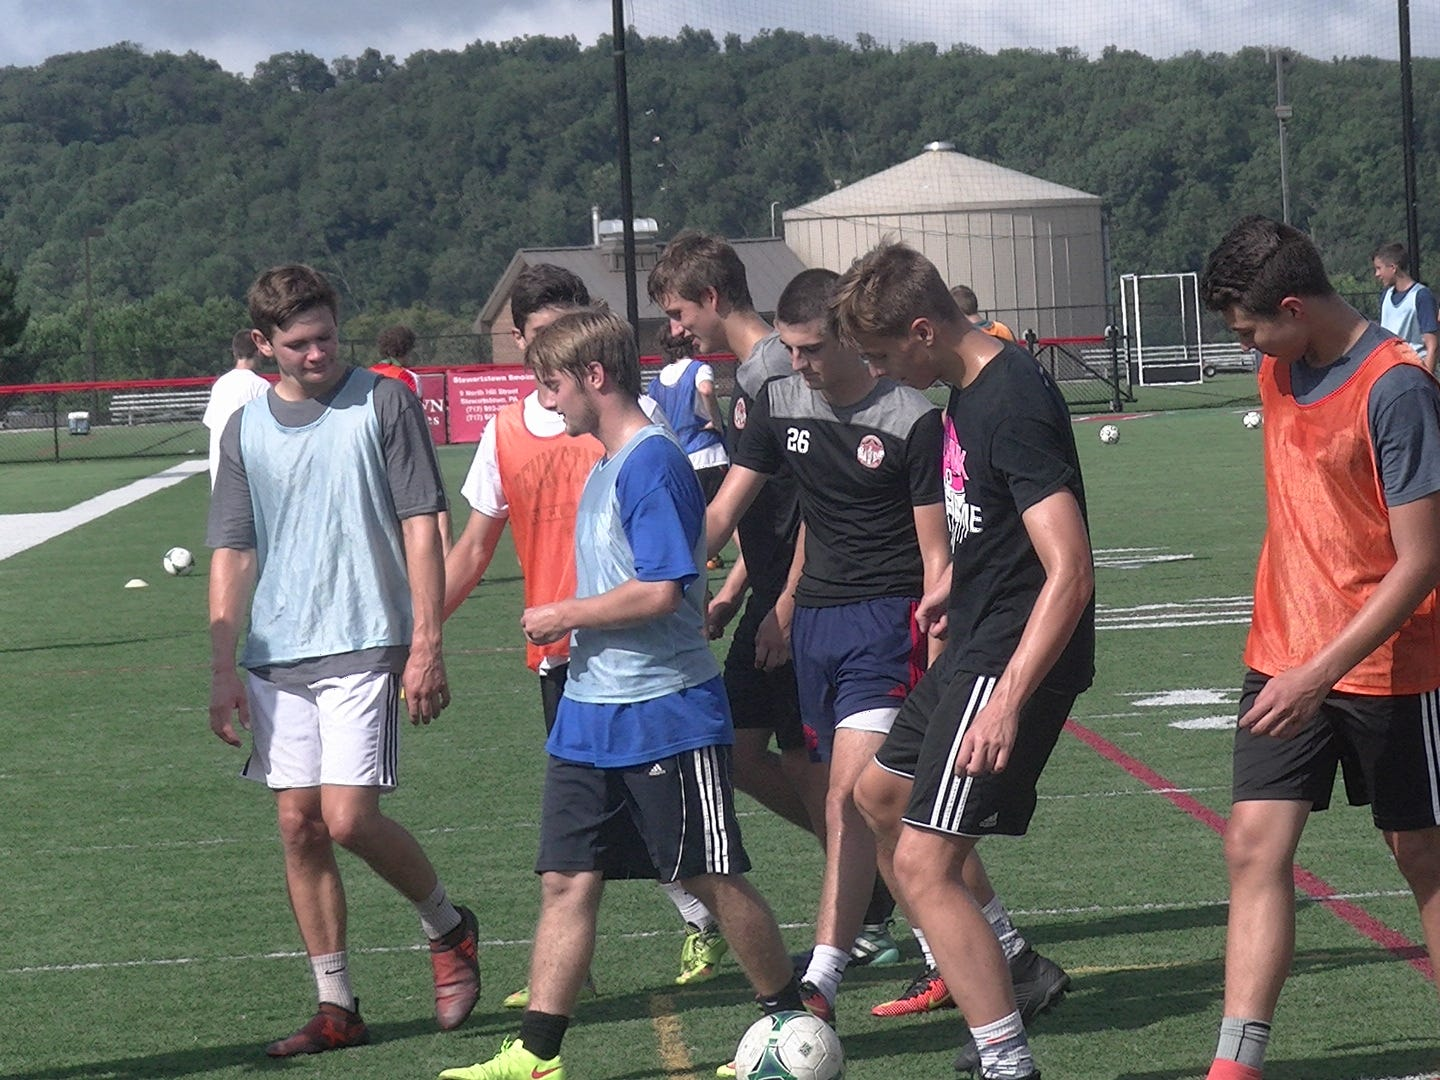 Susquehannock boys' soccer players walk off the field at the end of the first day of practice Monday.